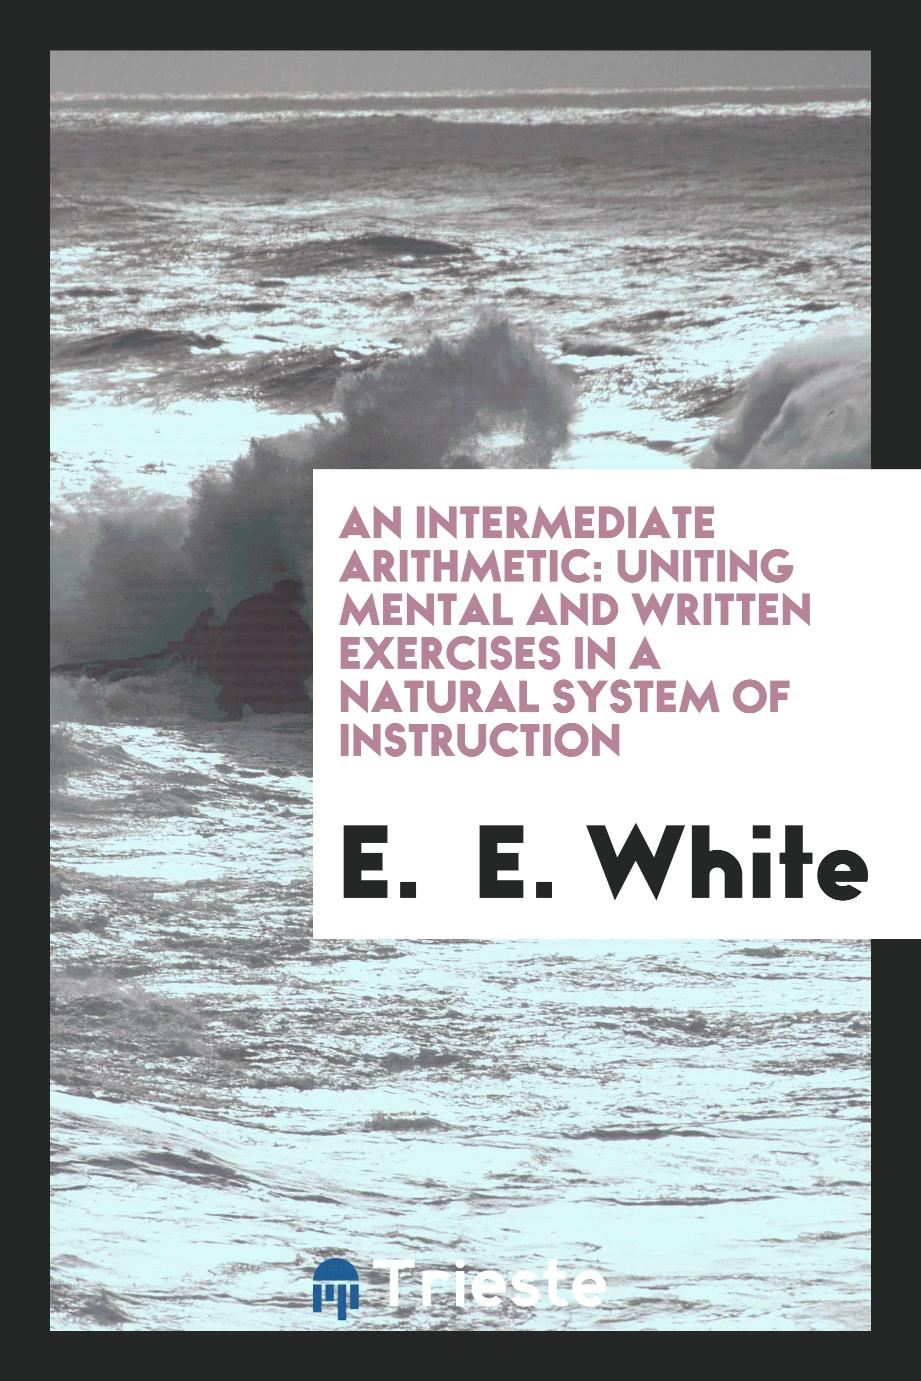 An intermediate arithmetic: uniting mental and written exercises in a natural system of instruction